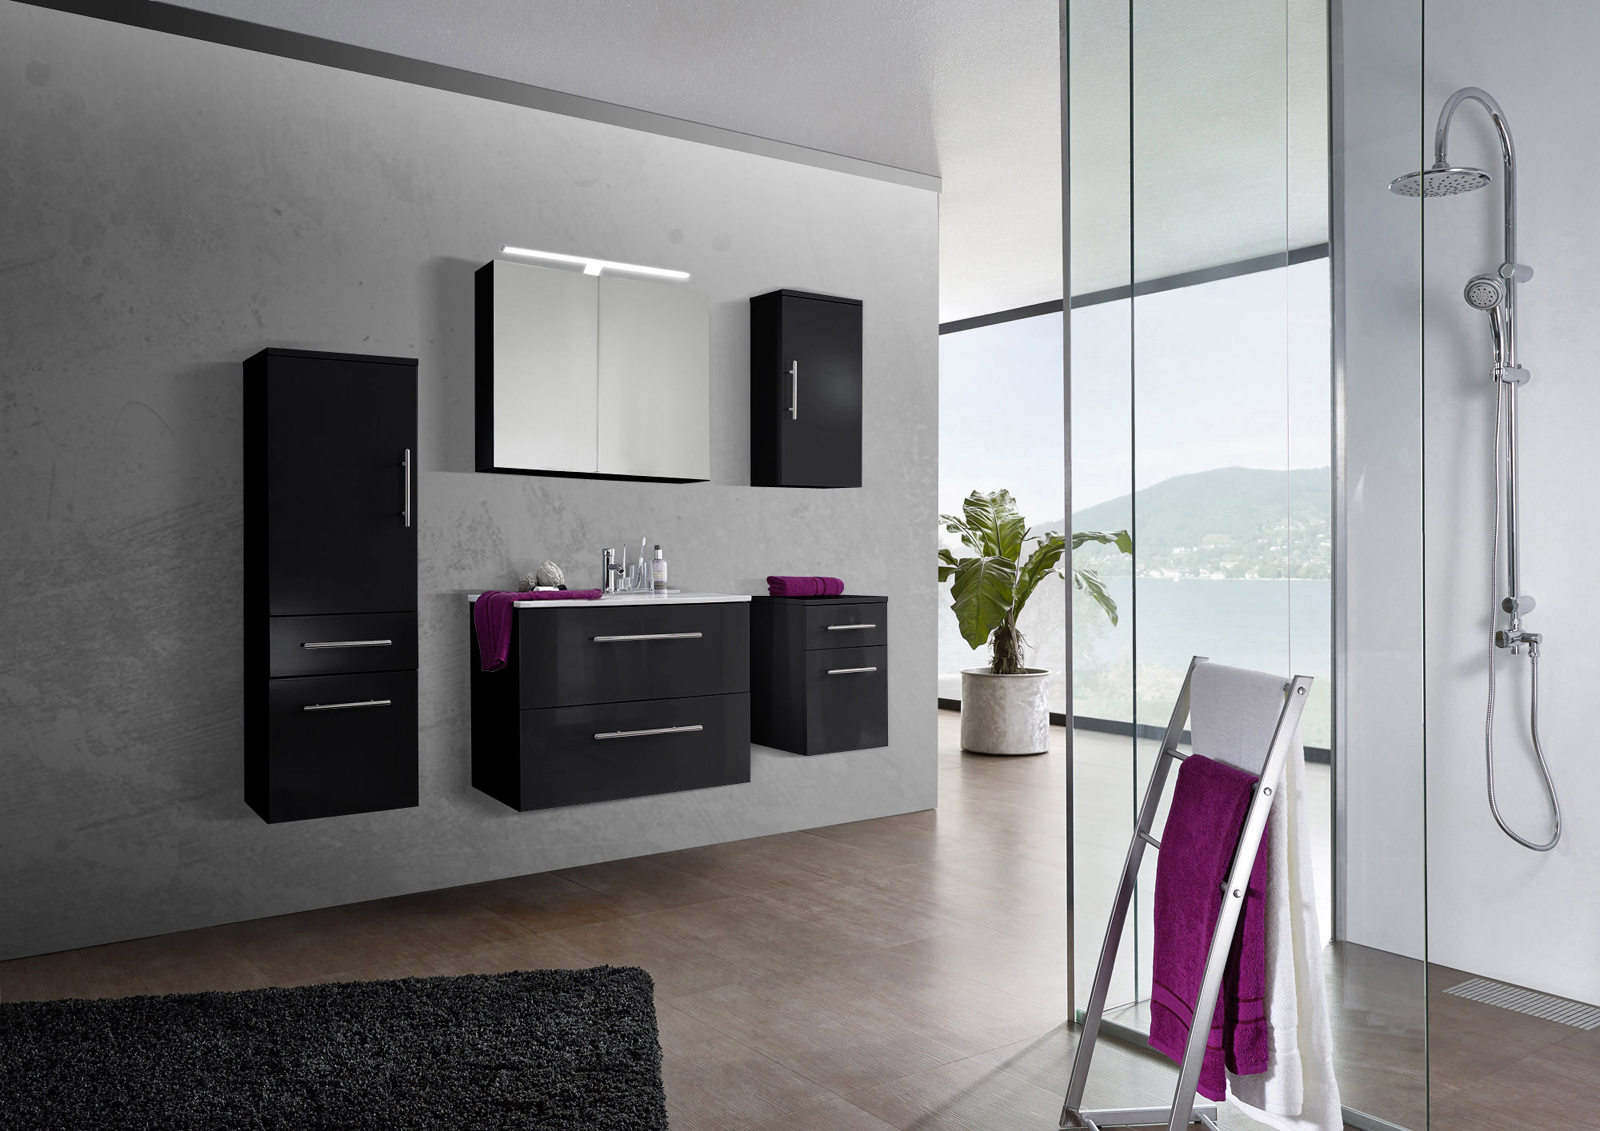 sam 5tlg badezimmer set spiegelschrank schwarz 80 cm verena auf lager. Black Bedroom Furniture Sets. Home Design Ideas